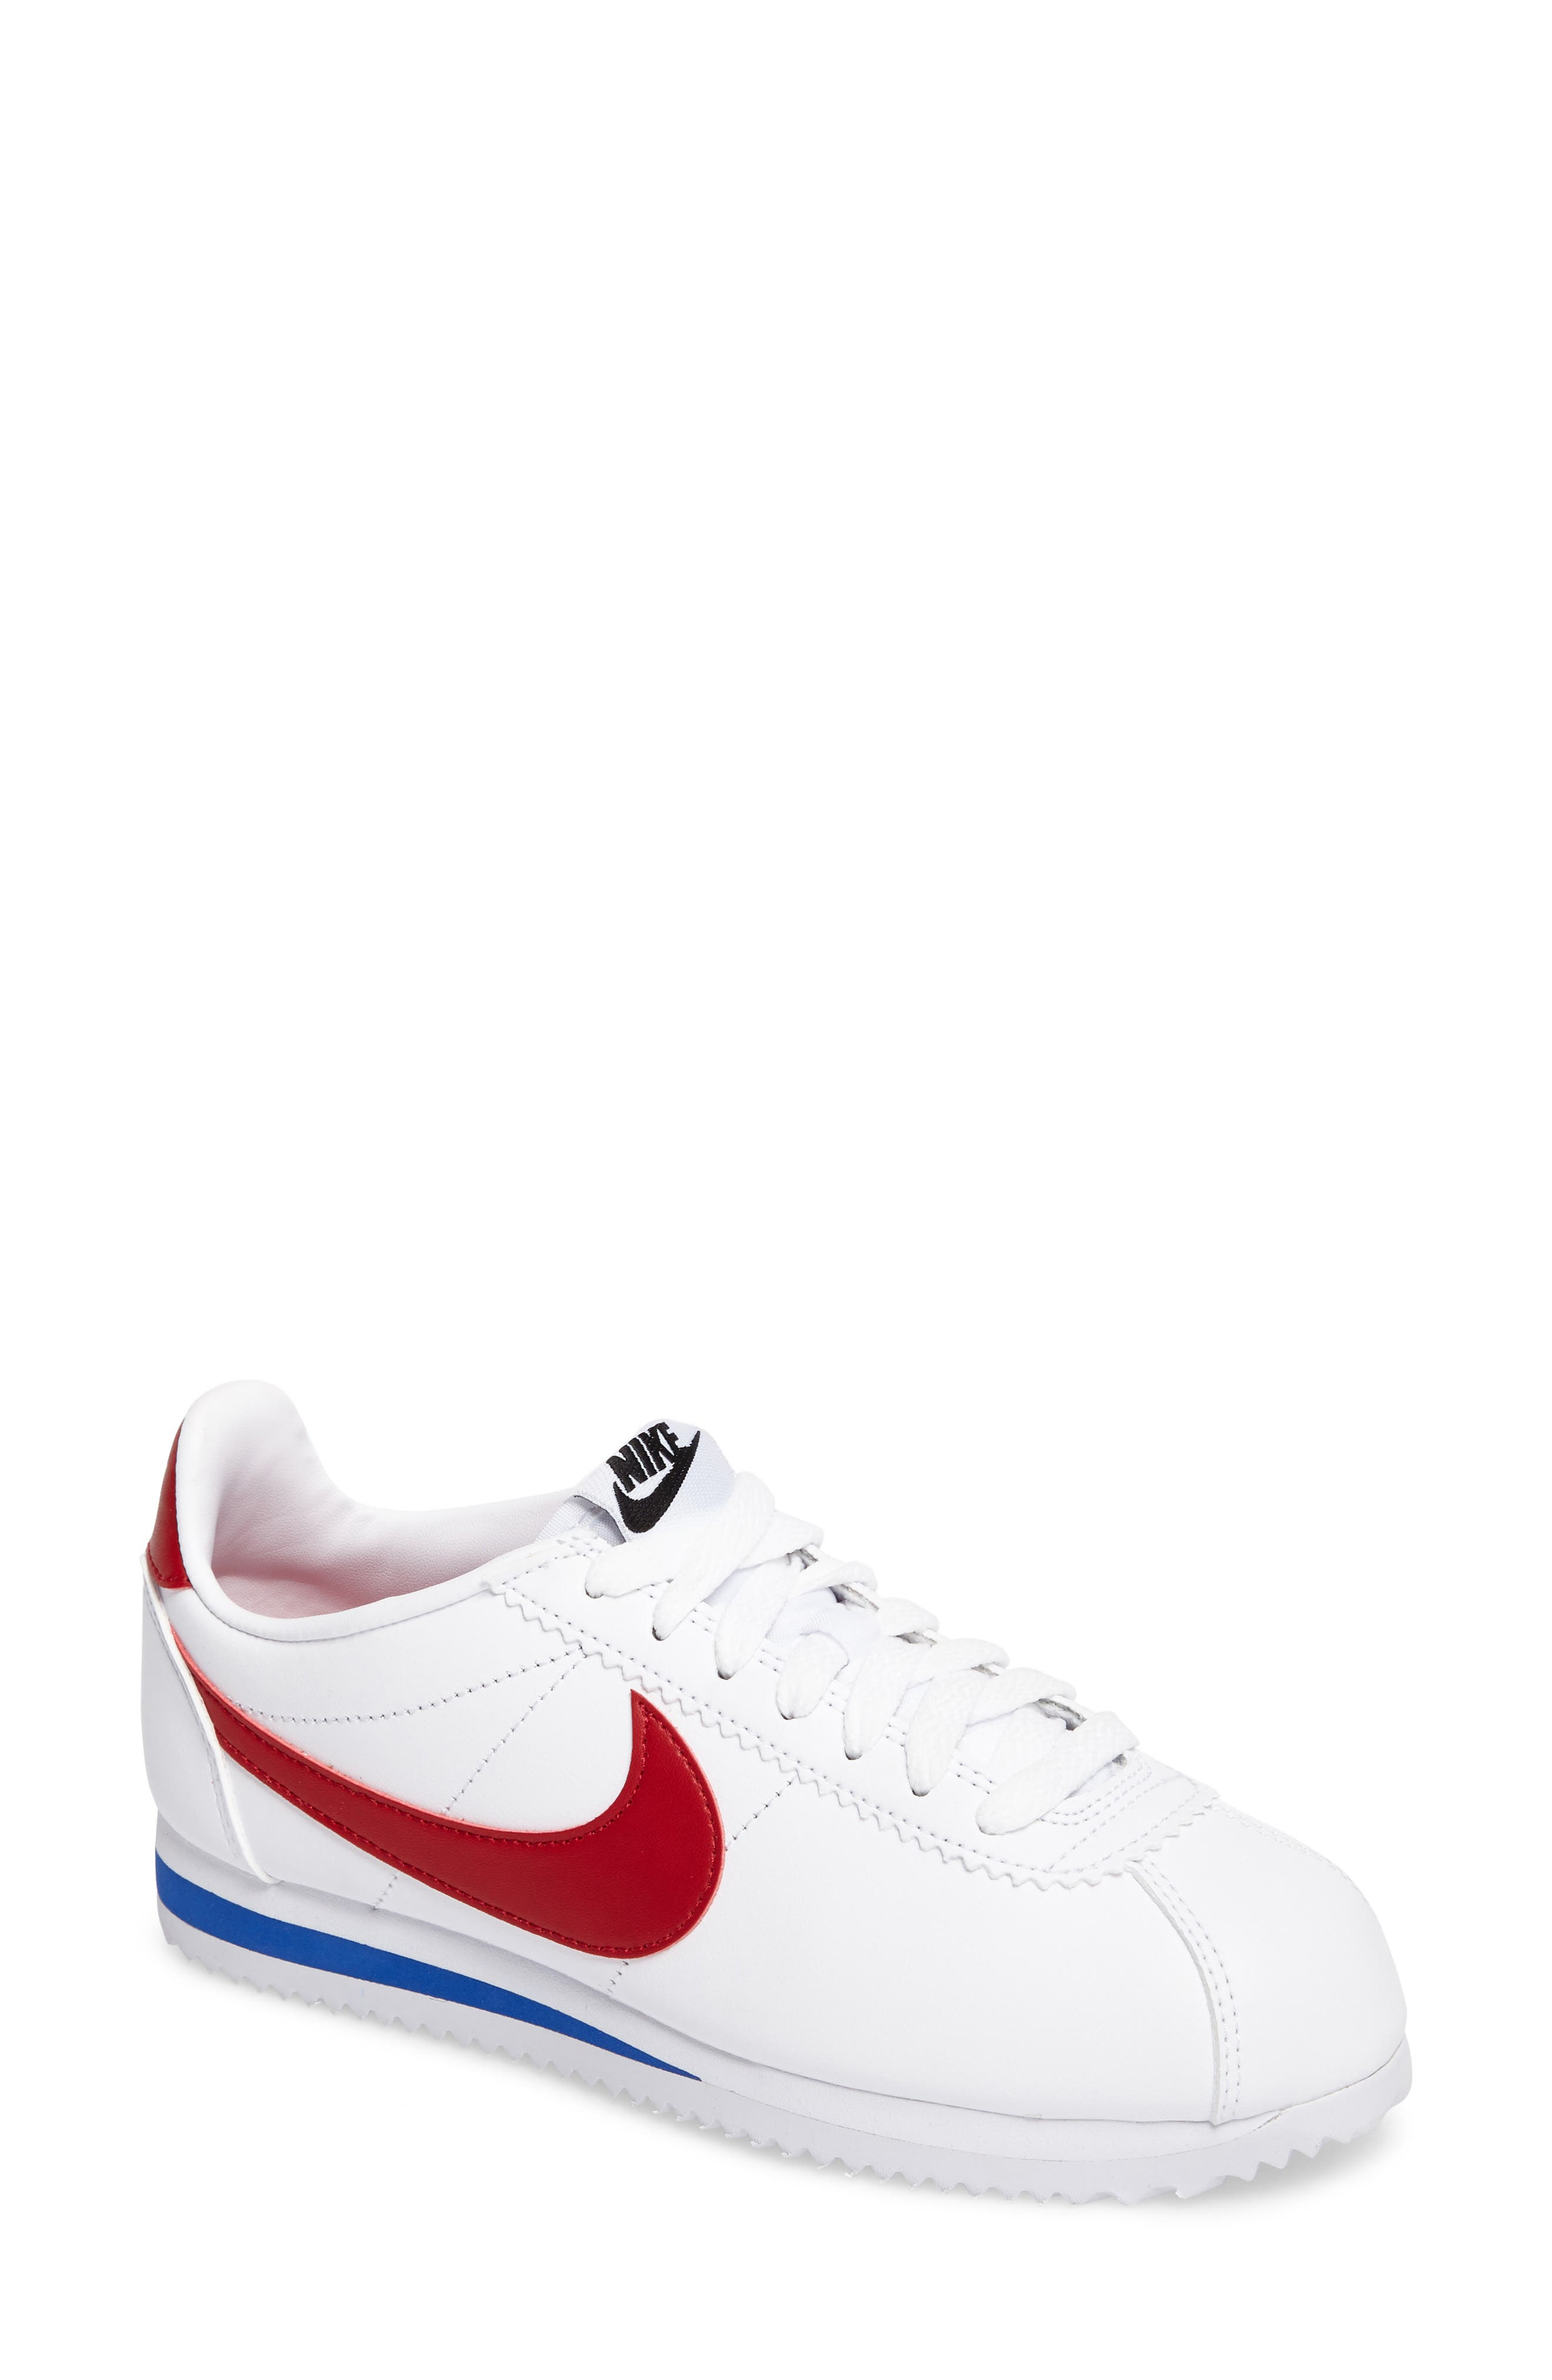 Classic Cortez Sneaker,                             Main thumbnail 1, color,                             WHITE/ VARSITY RED